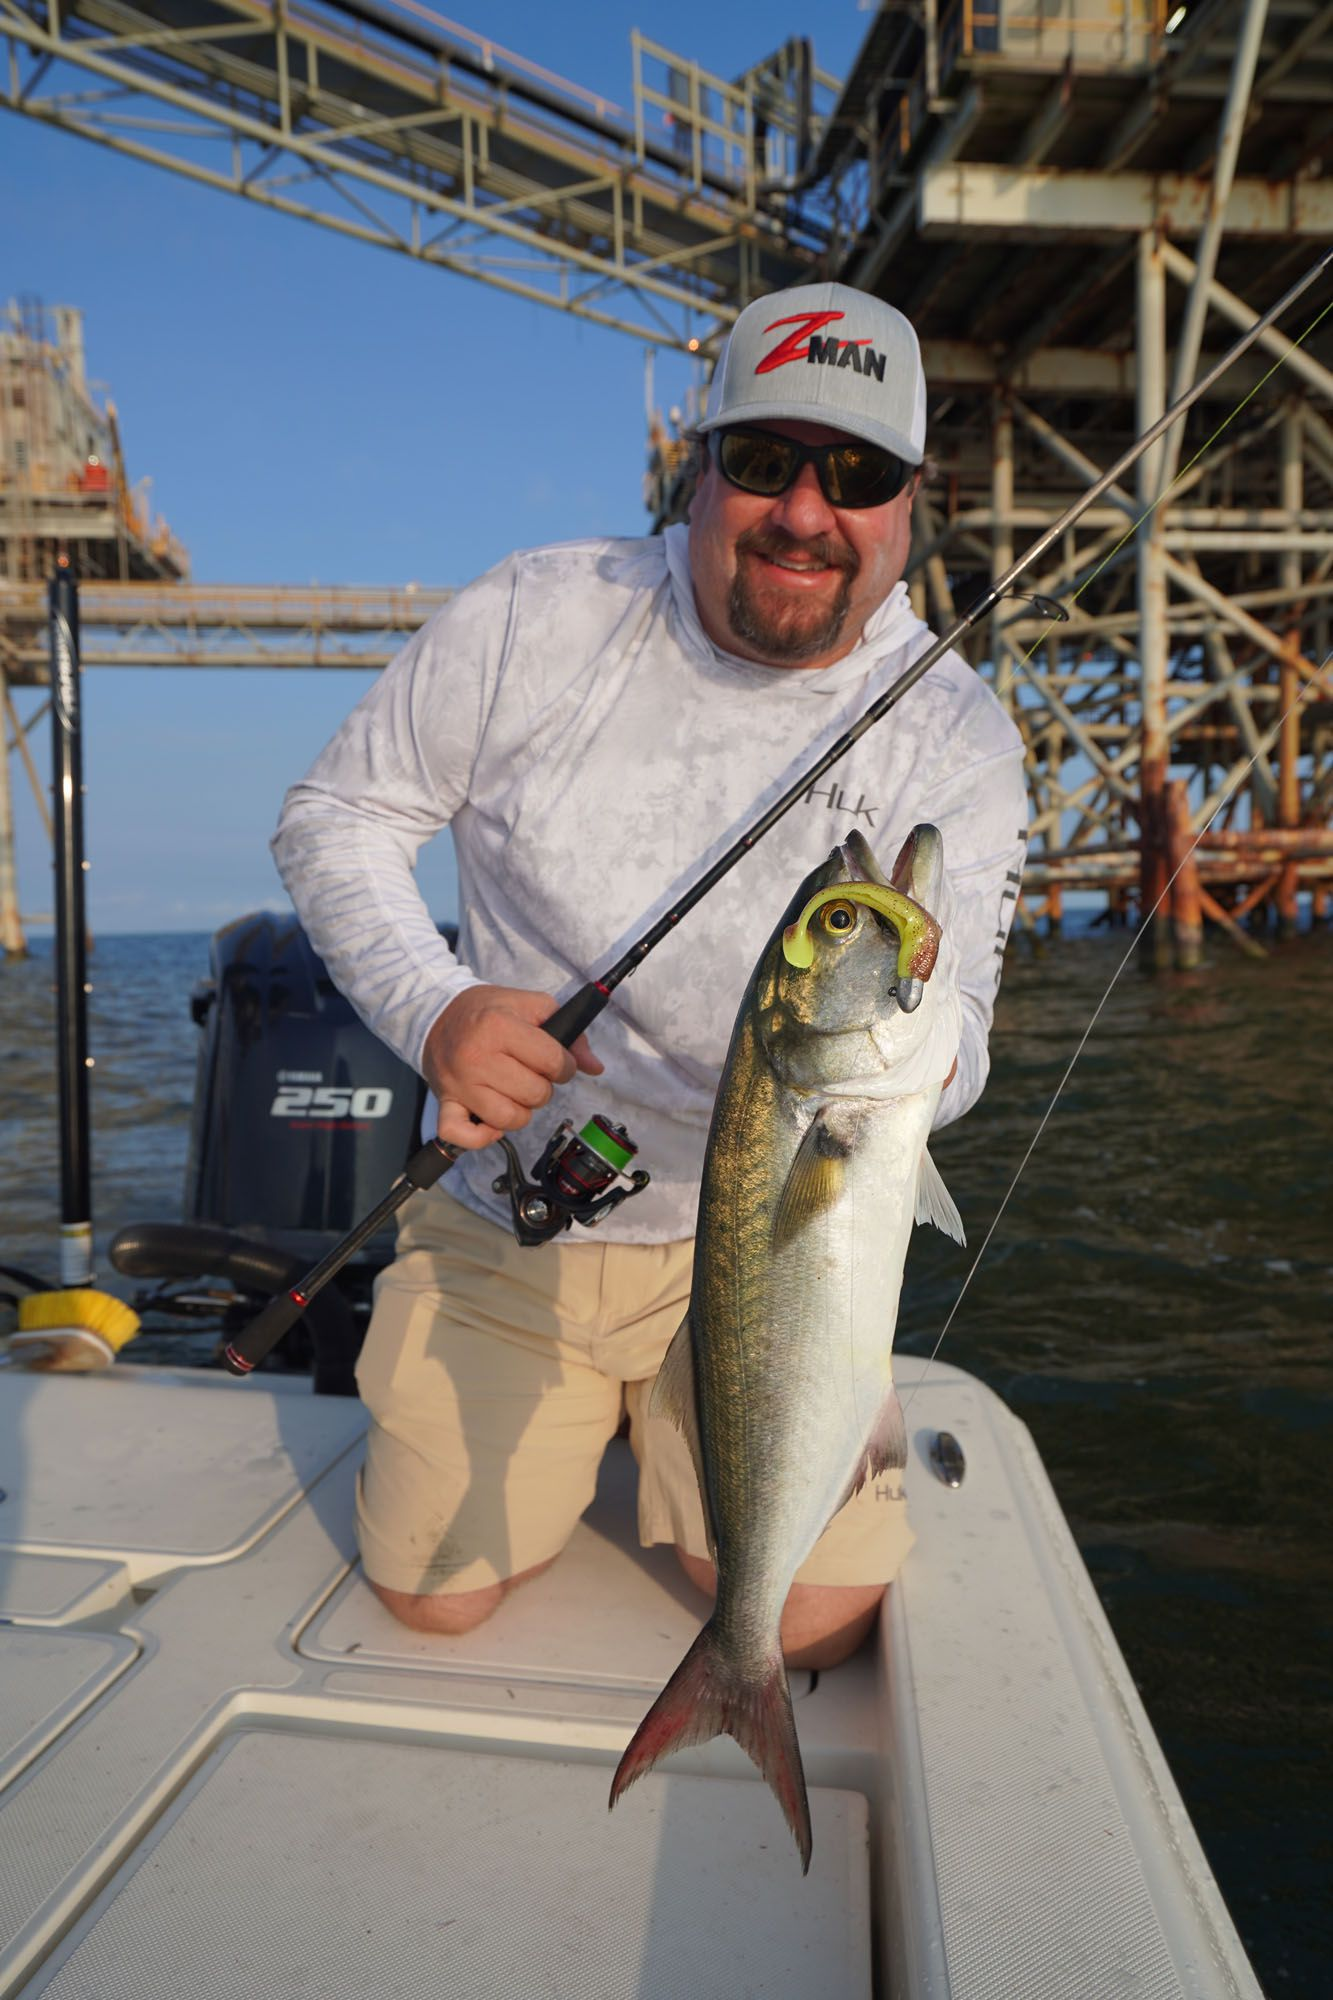 After suffering some aggravating cut-offs, Prochazka — Z-Man's national sales manager — managed to hook a good bluefish in the jaw and land the fish. It went for one of Prochazka's faves, a 5-inch DieZel MinnowZ in a sexy penny color.